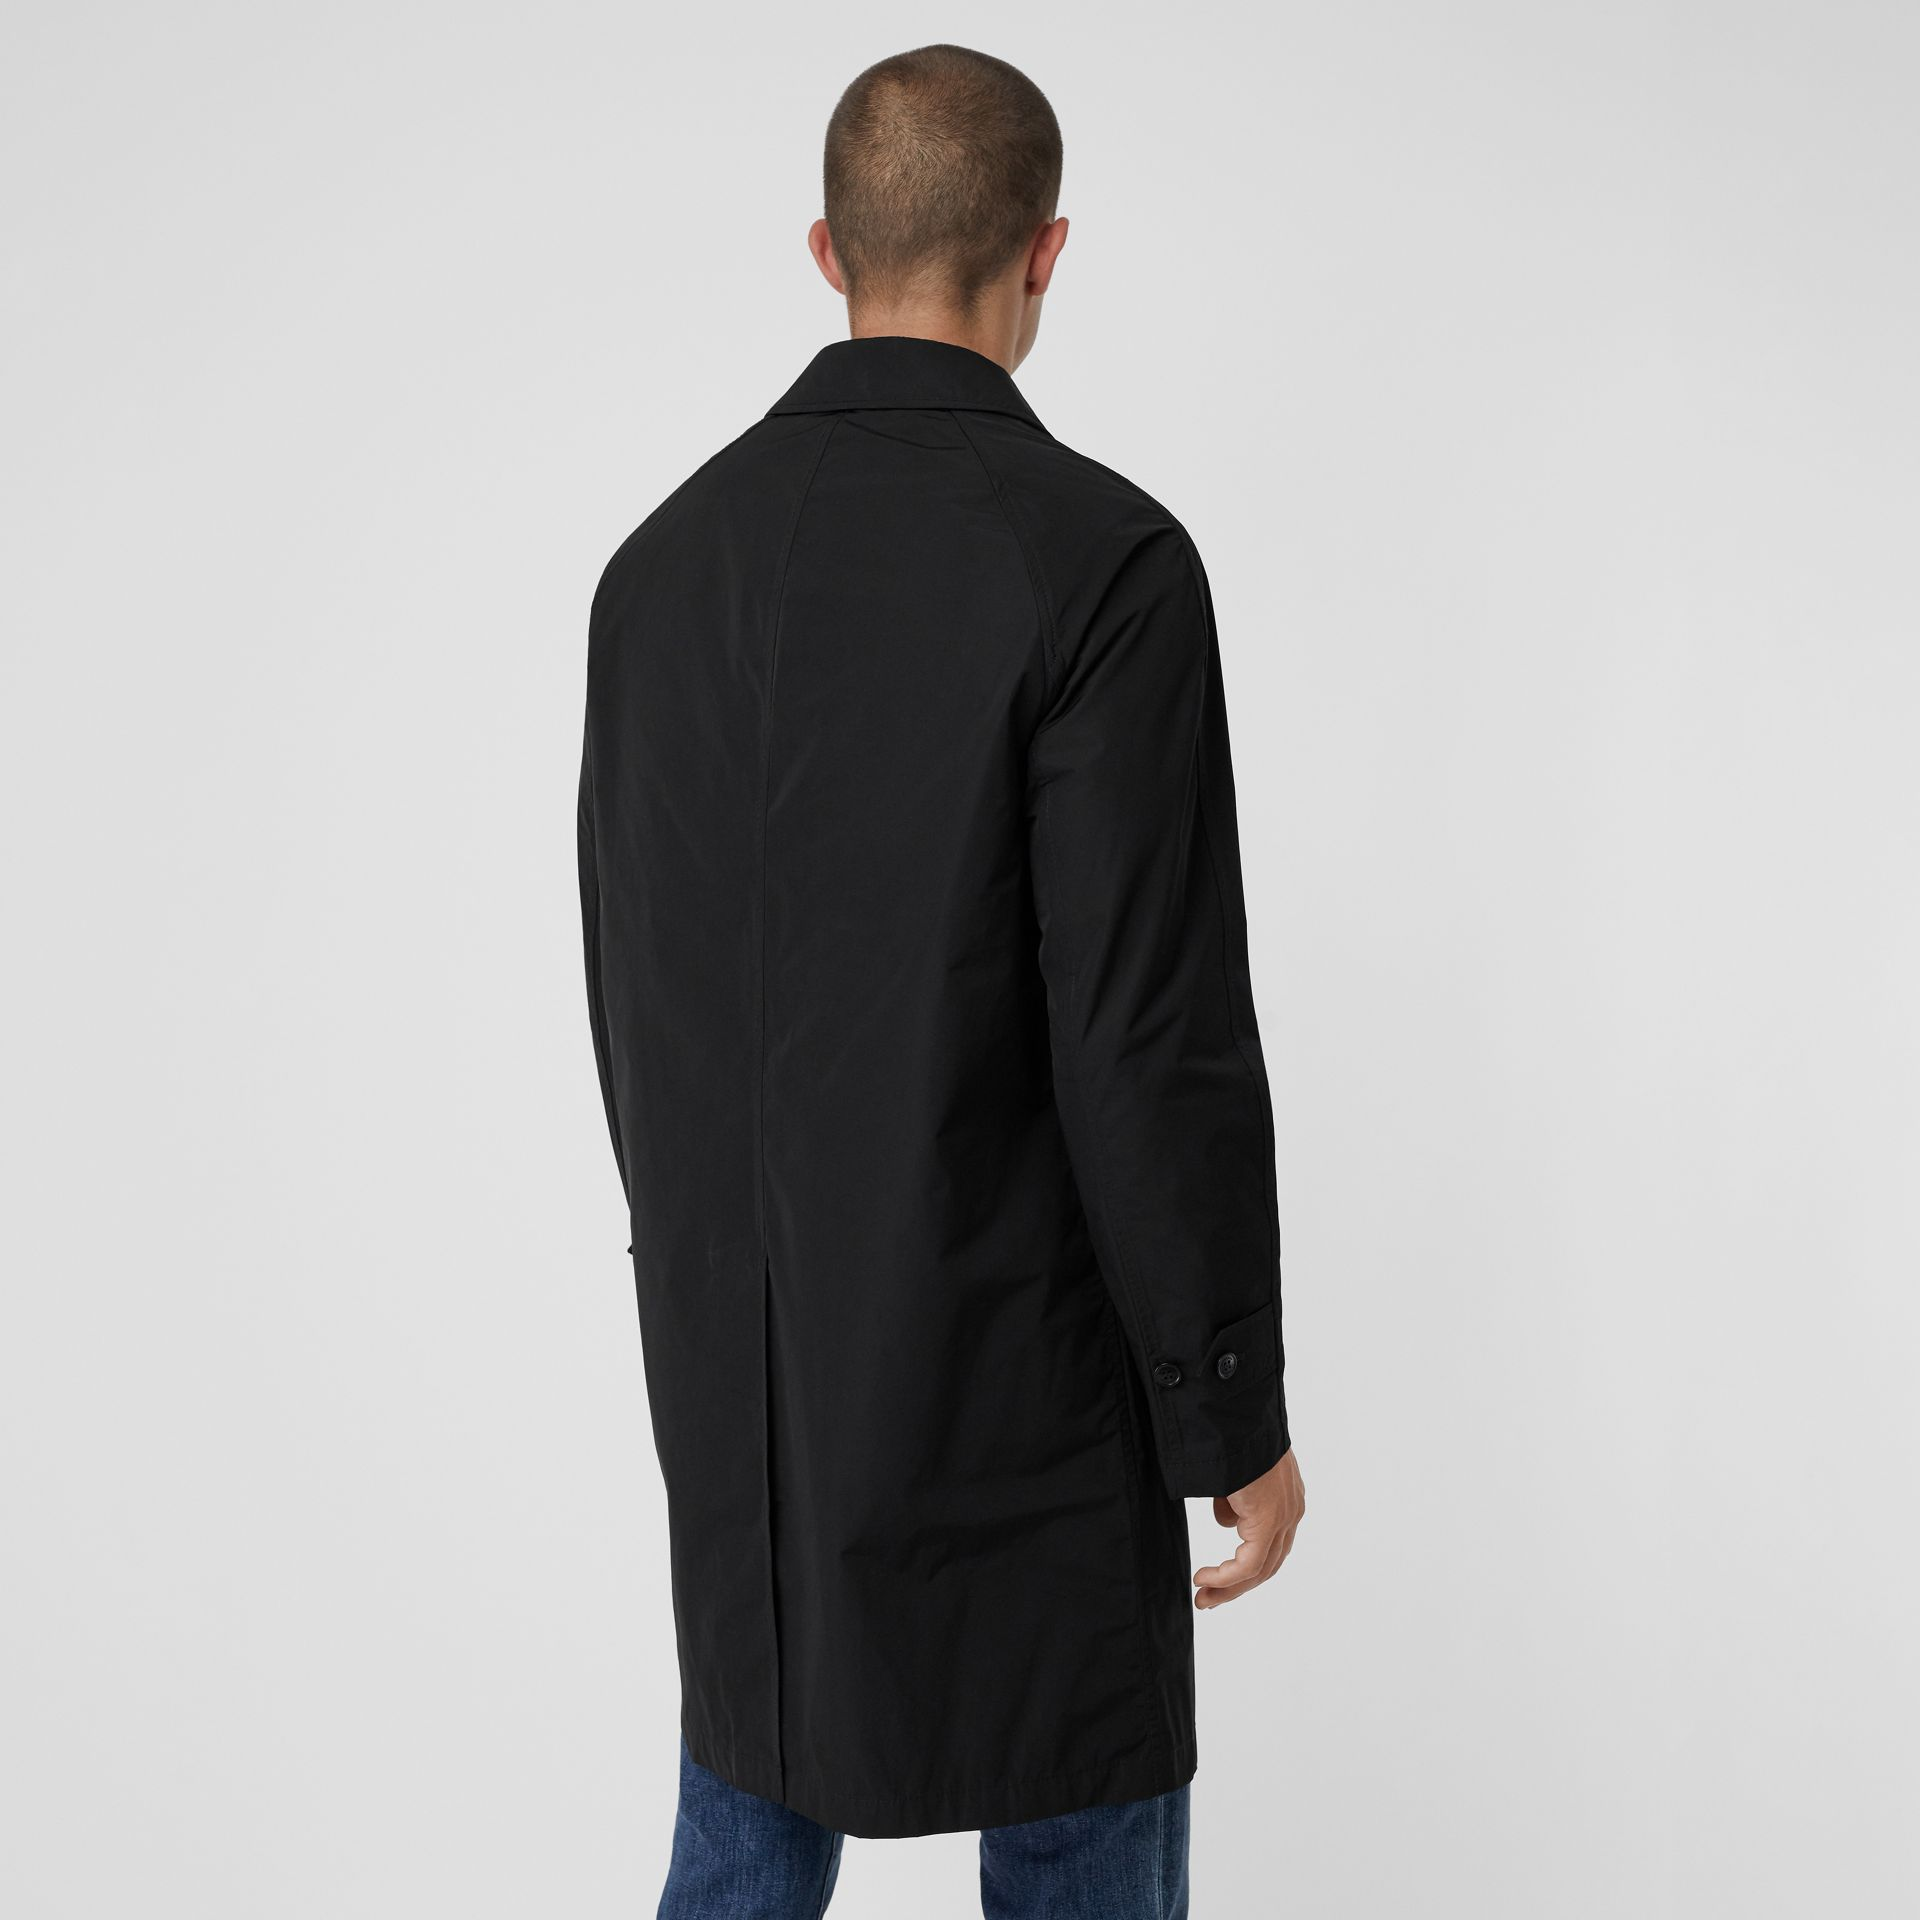 Shape-memory Taffeta Car Coat in Black - Men | Burberry Canada - gallery image 2